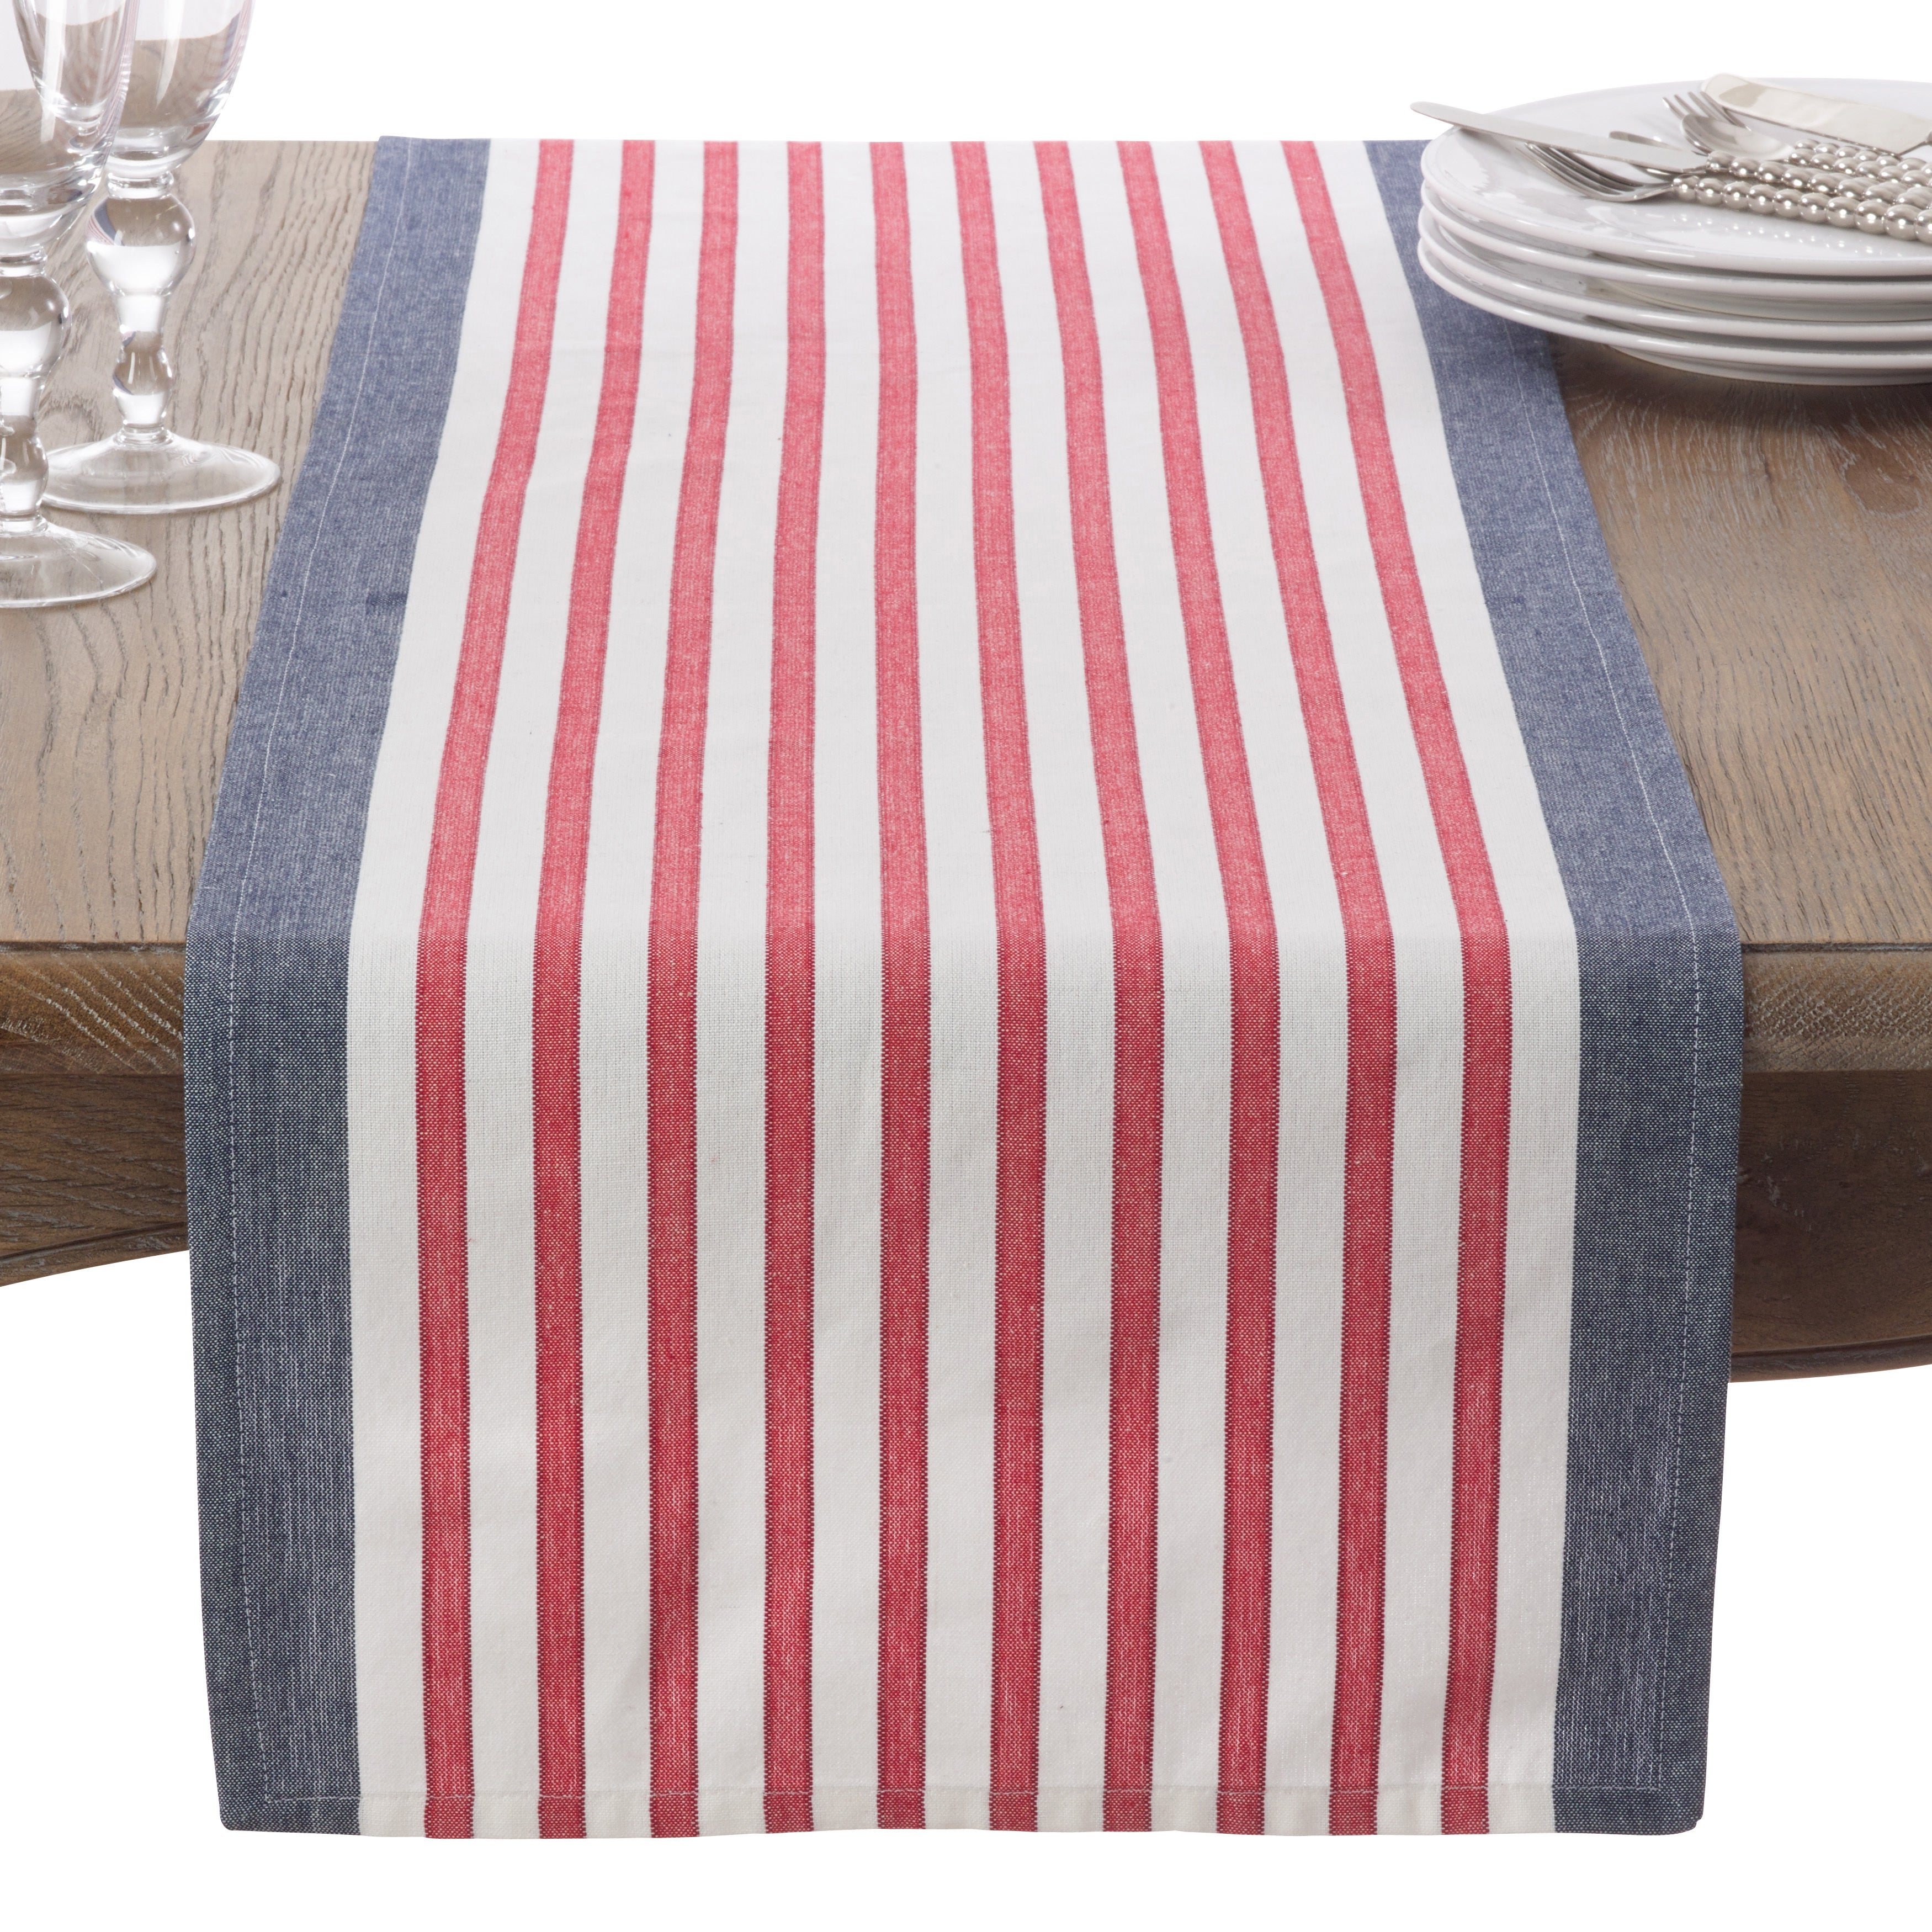 American Flag Usa Red White Blue Stripe Cotton Table Runner On Free Shipping Orders Over 45 14947678